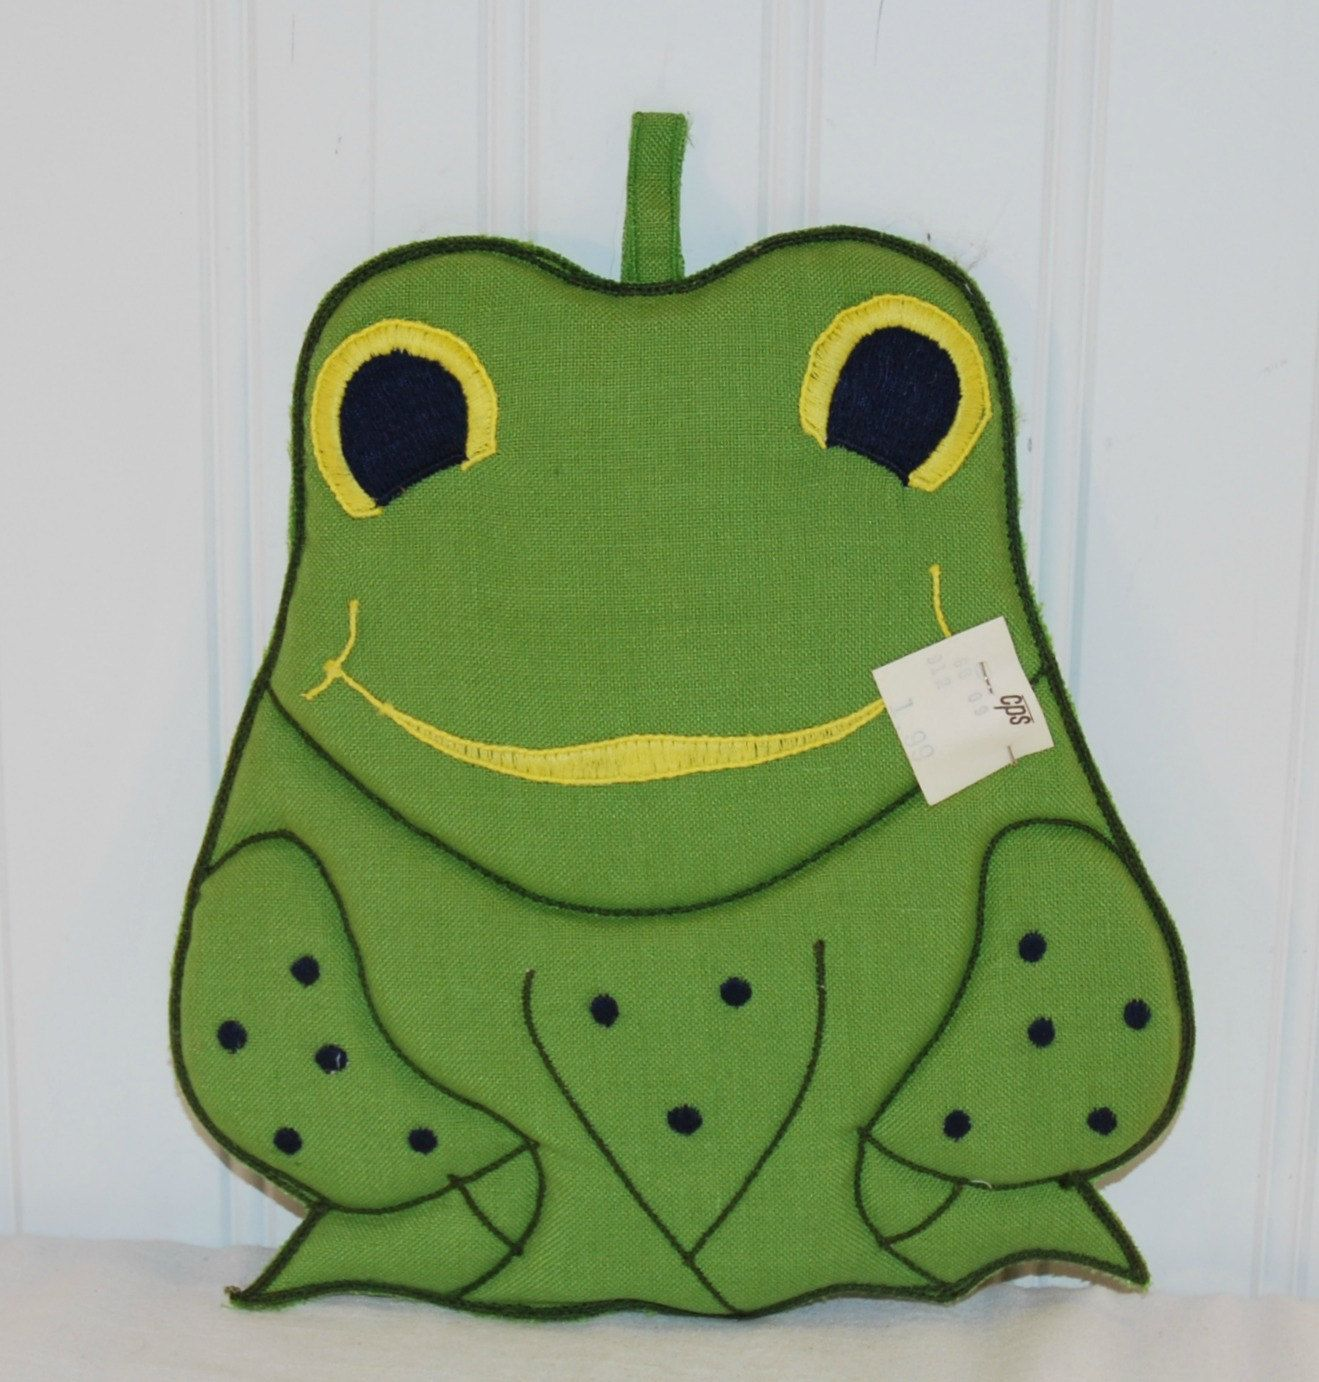 Vintage Adorable Green Frog Fabric Potholder (c. 1980) Kitchen Decor, Frog  Collectible, Cuteness Overload, Gift Idea, Repurpose, Upcycle